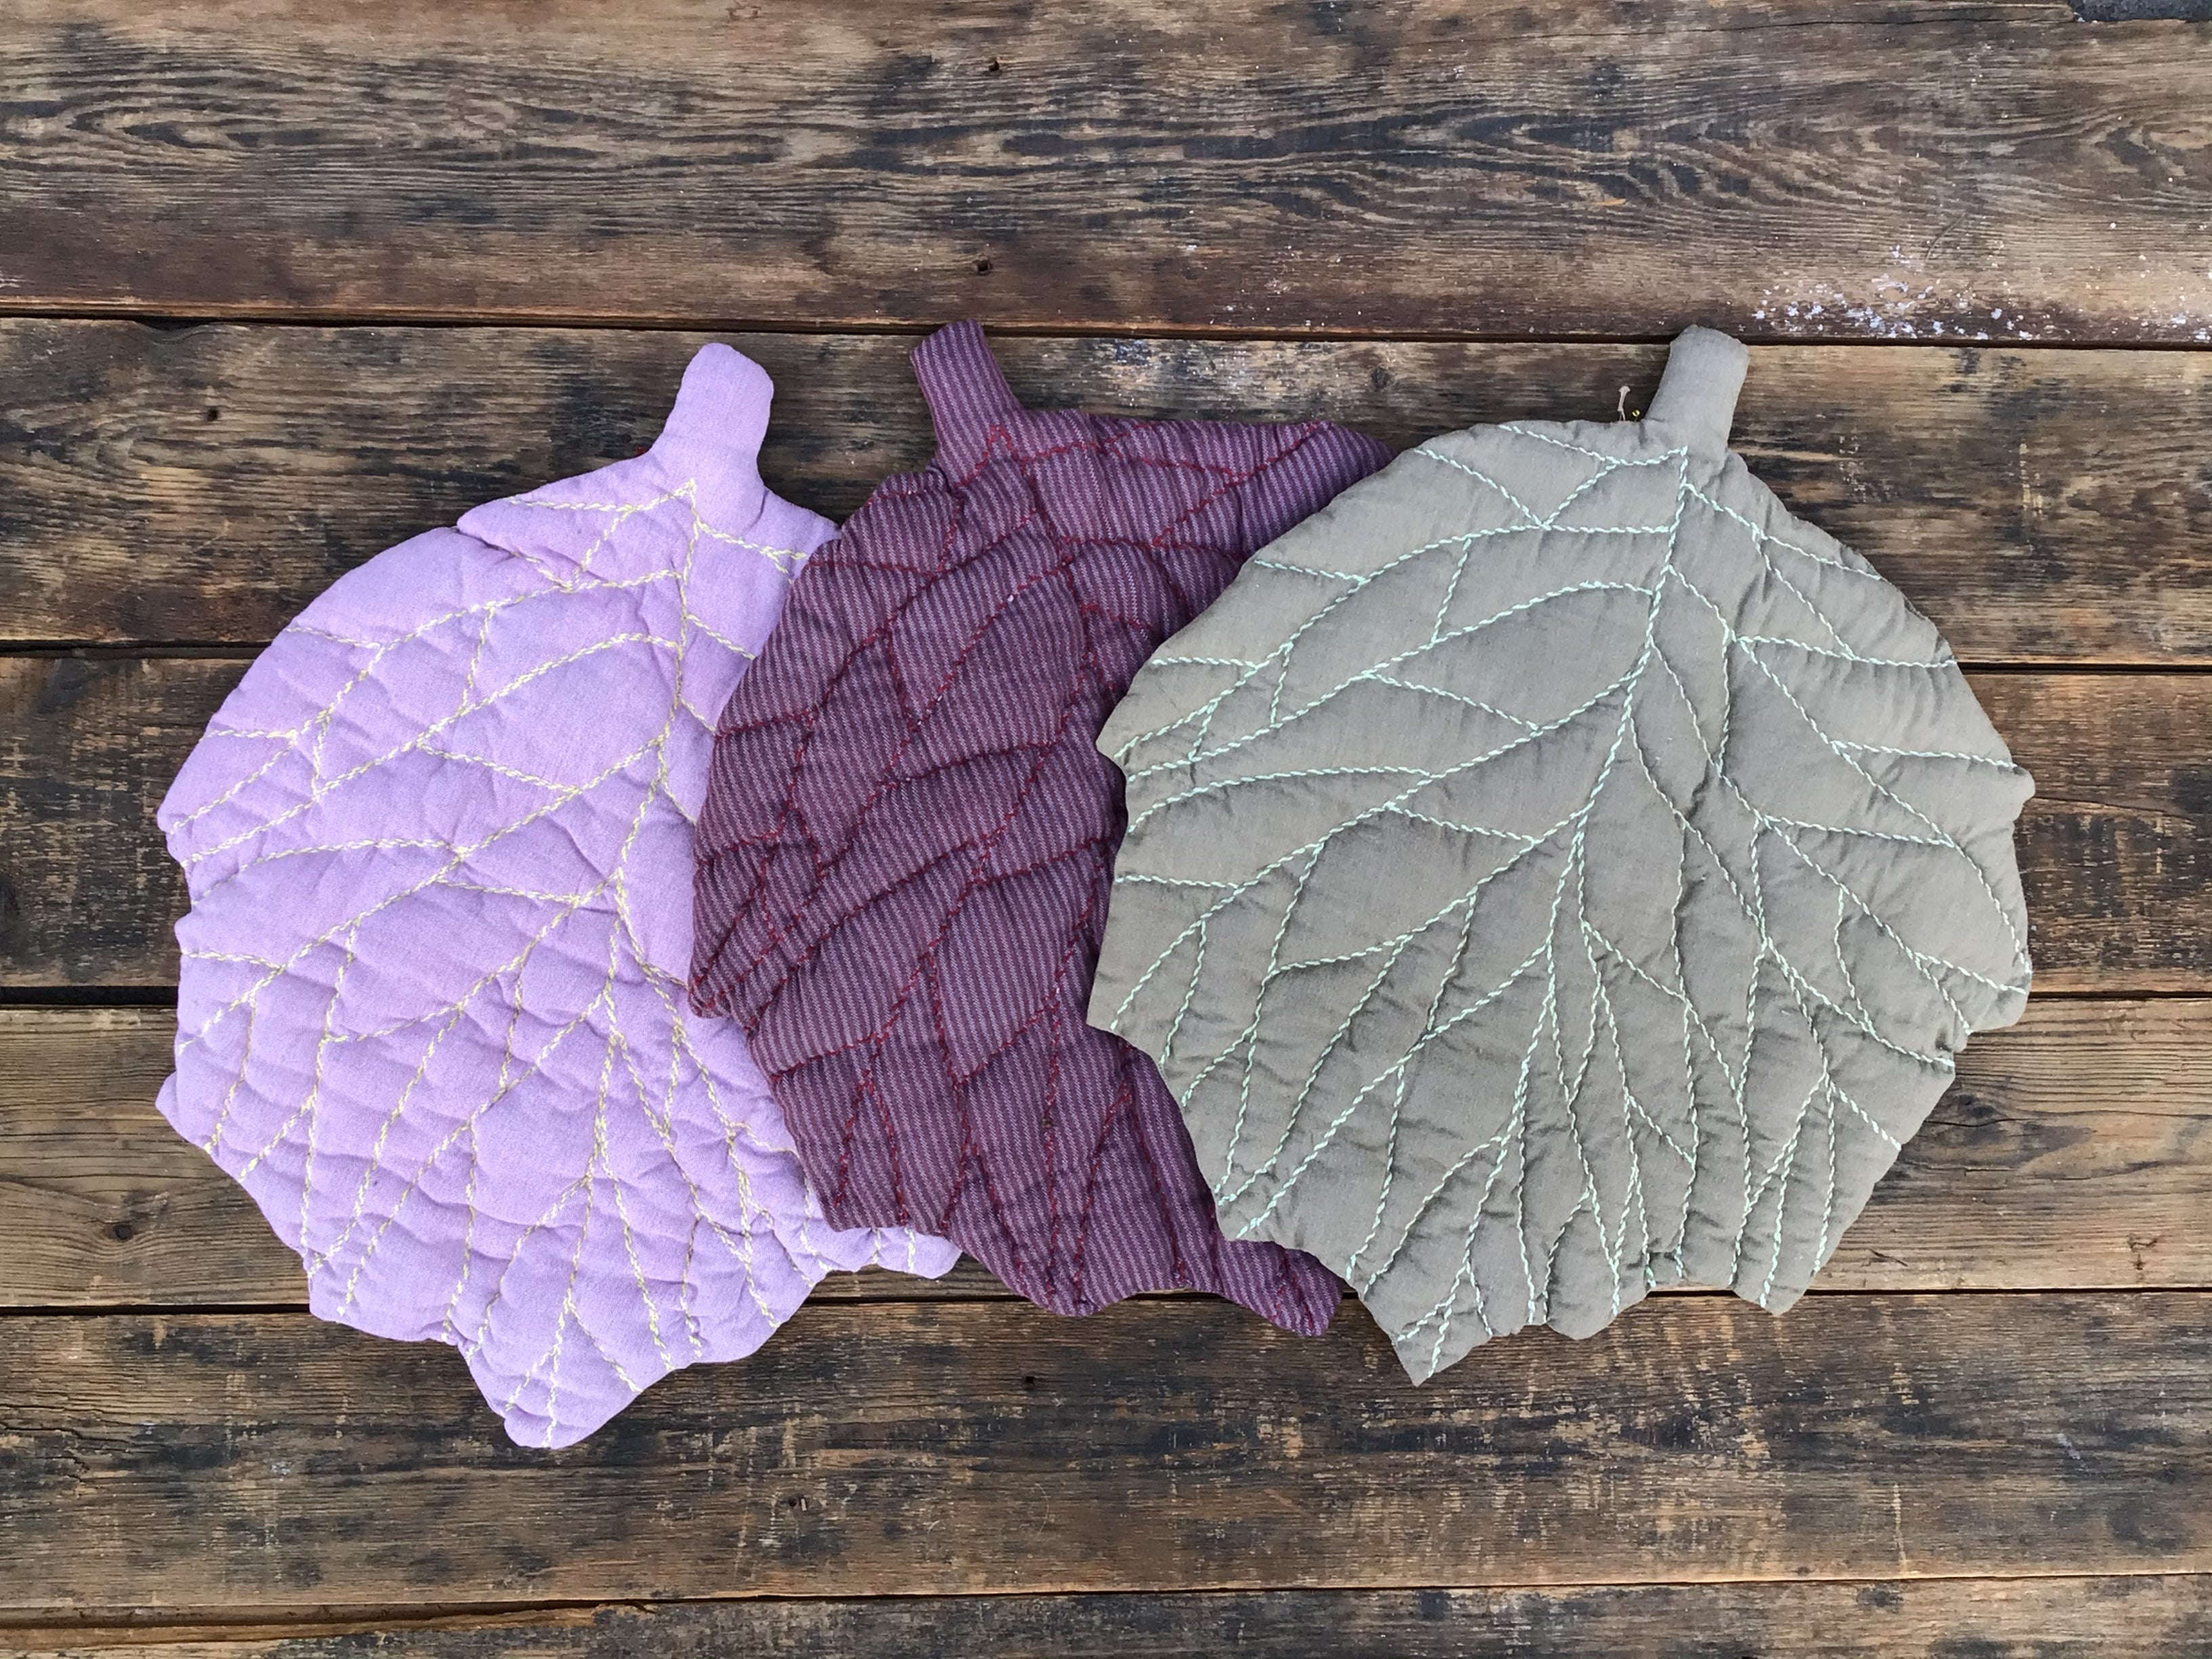 Leaf quilt ° A∫P small